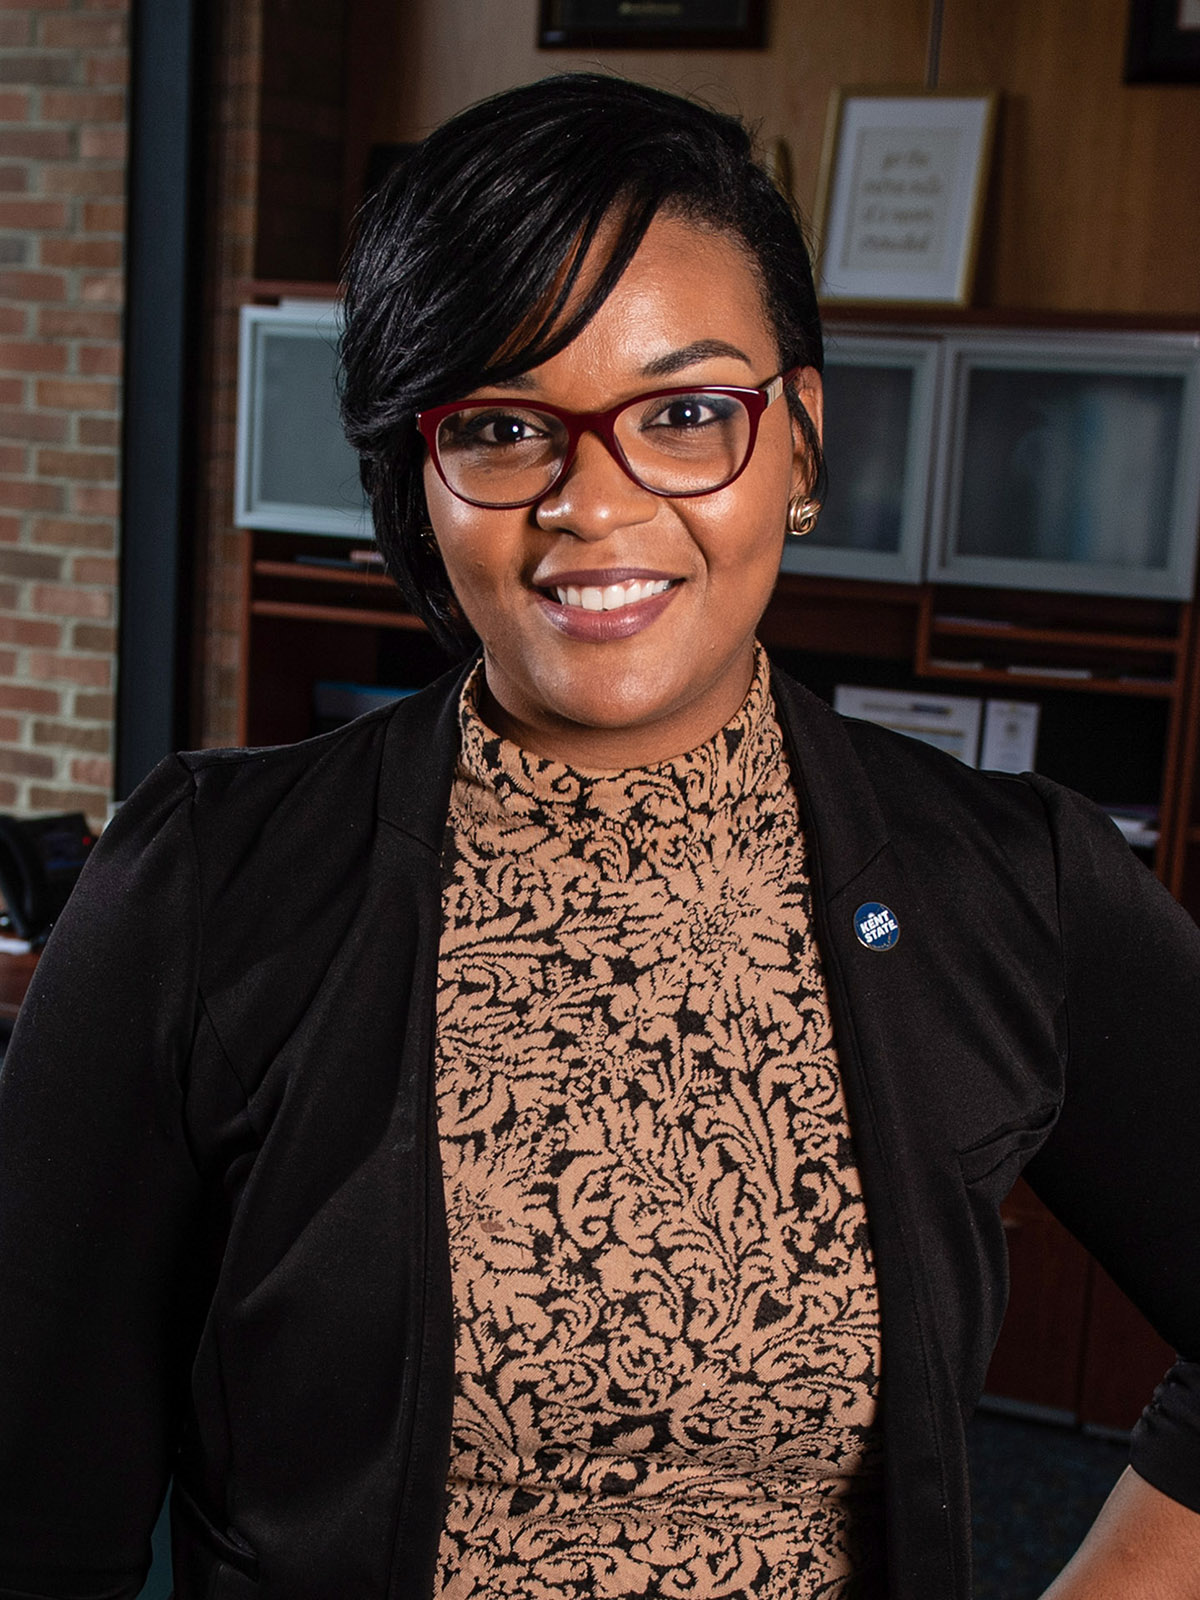 Taléa R. Drummer-Ferrell, Ph.D., is the first Black woman to be dean of students at Kent State University.